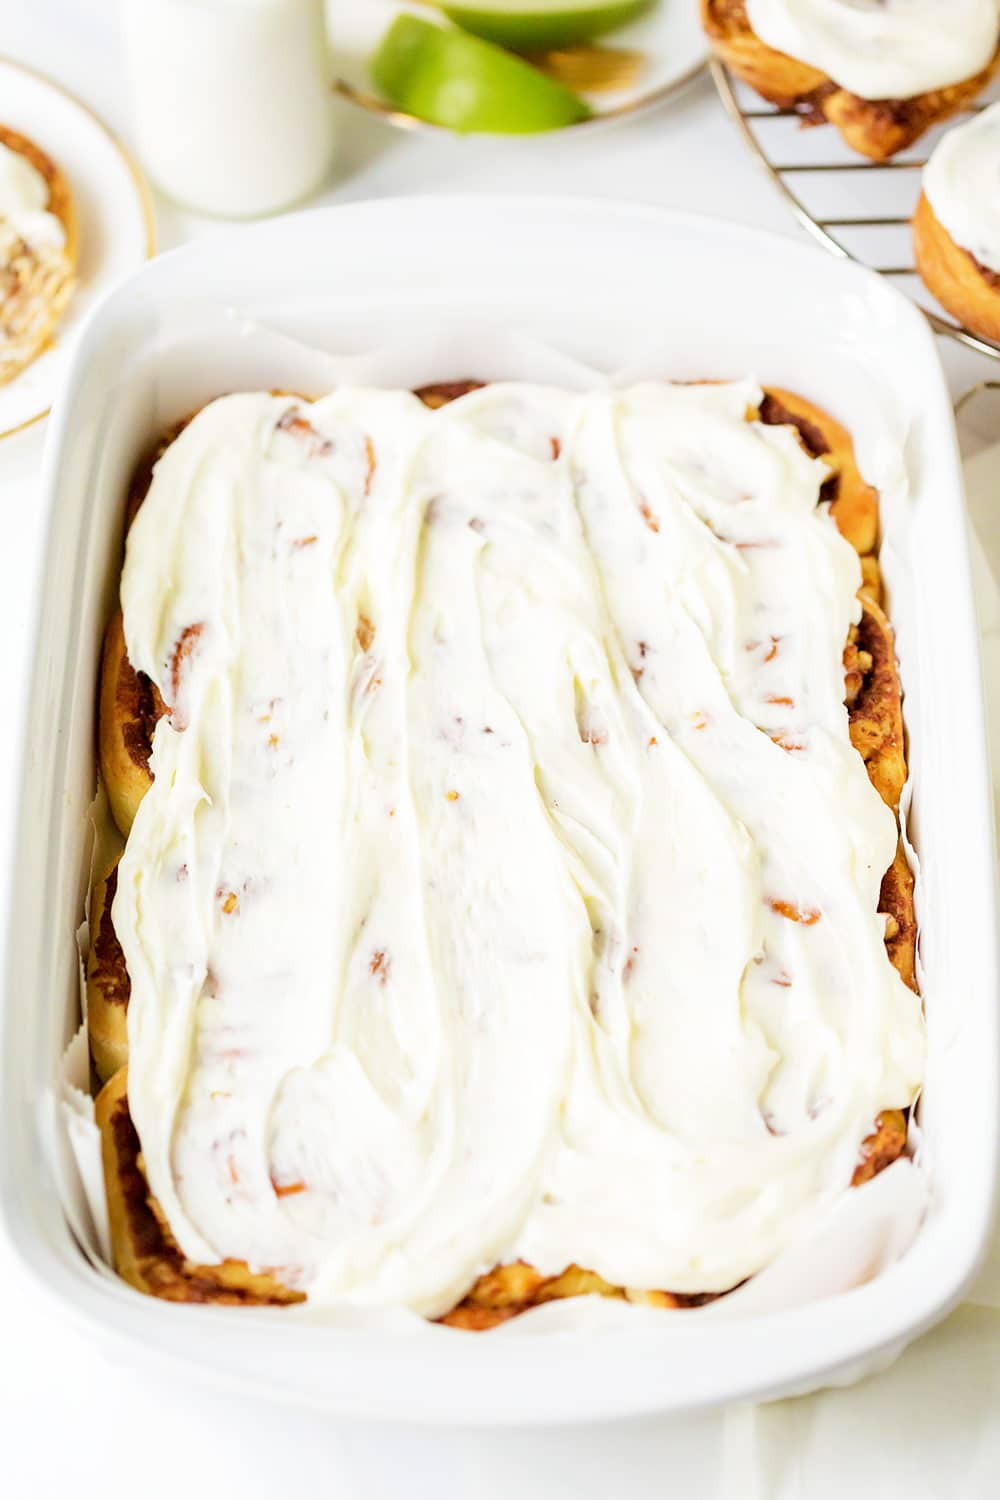 Apple Walnut Cinnamon Rolls